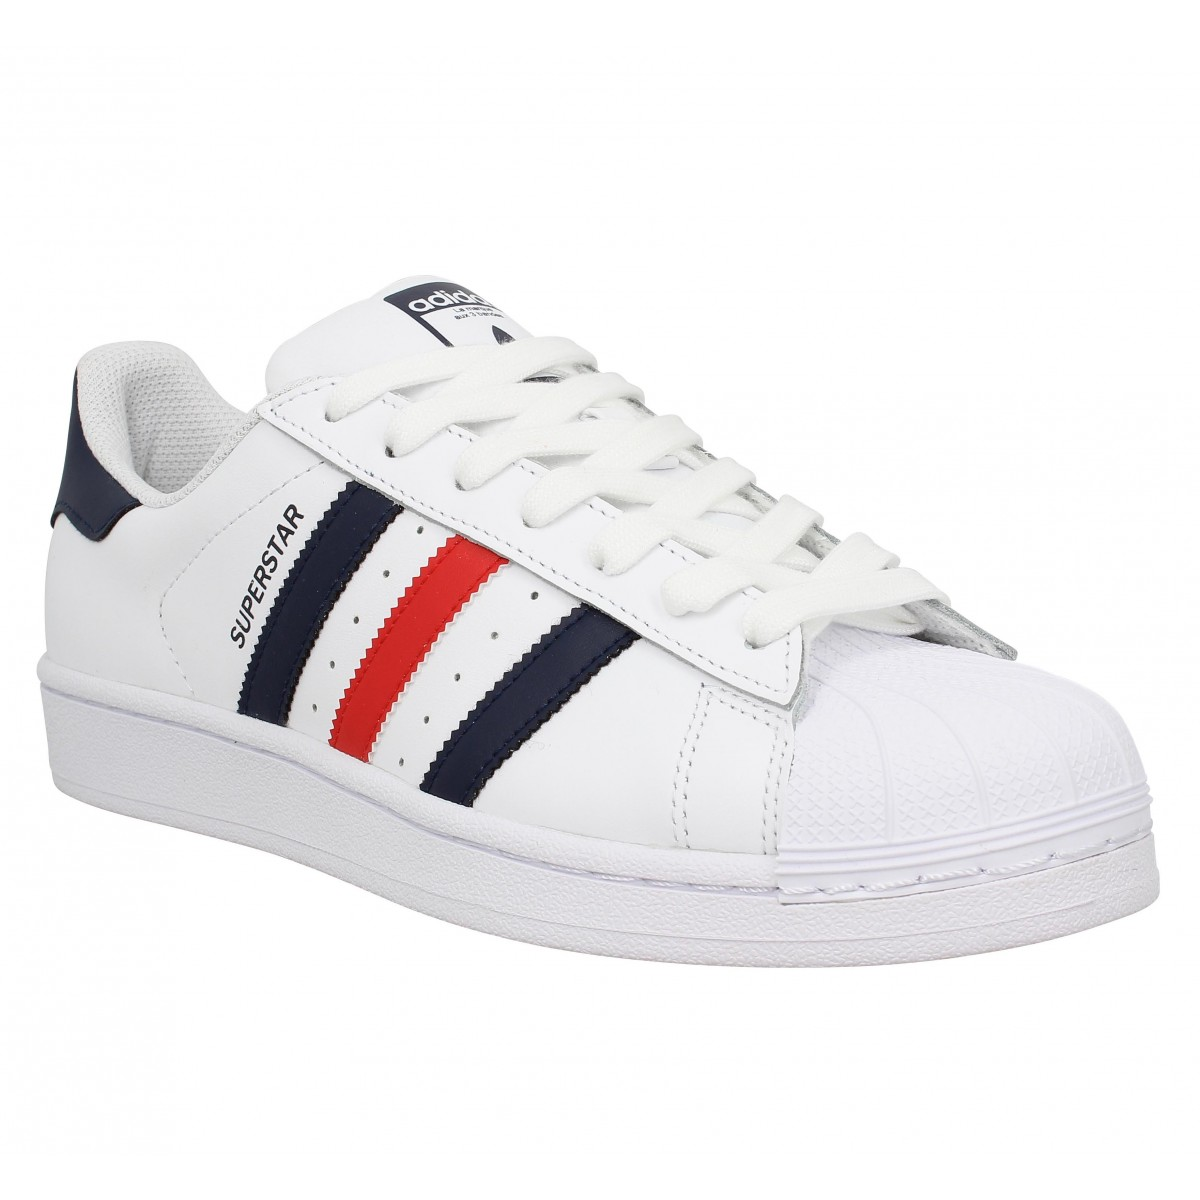 Adidas superstar foundation cuir homme blanc